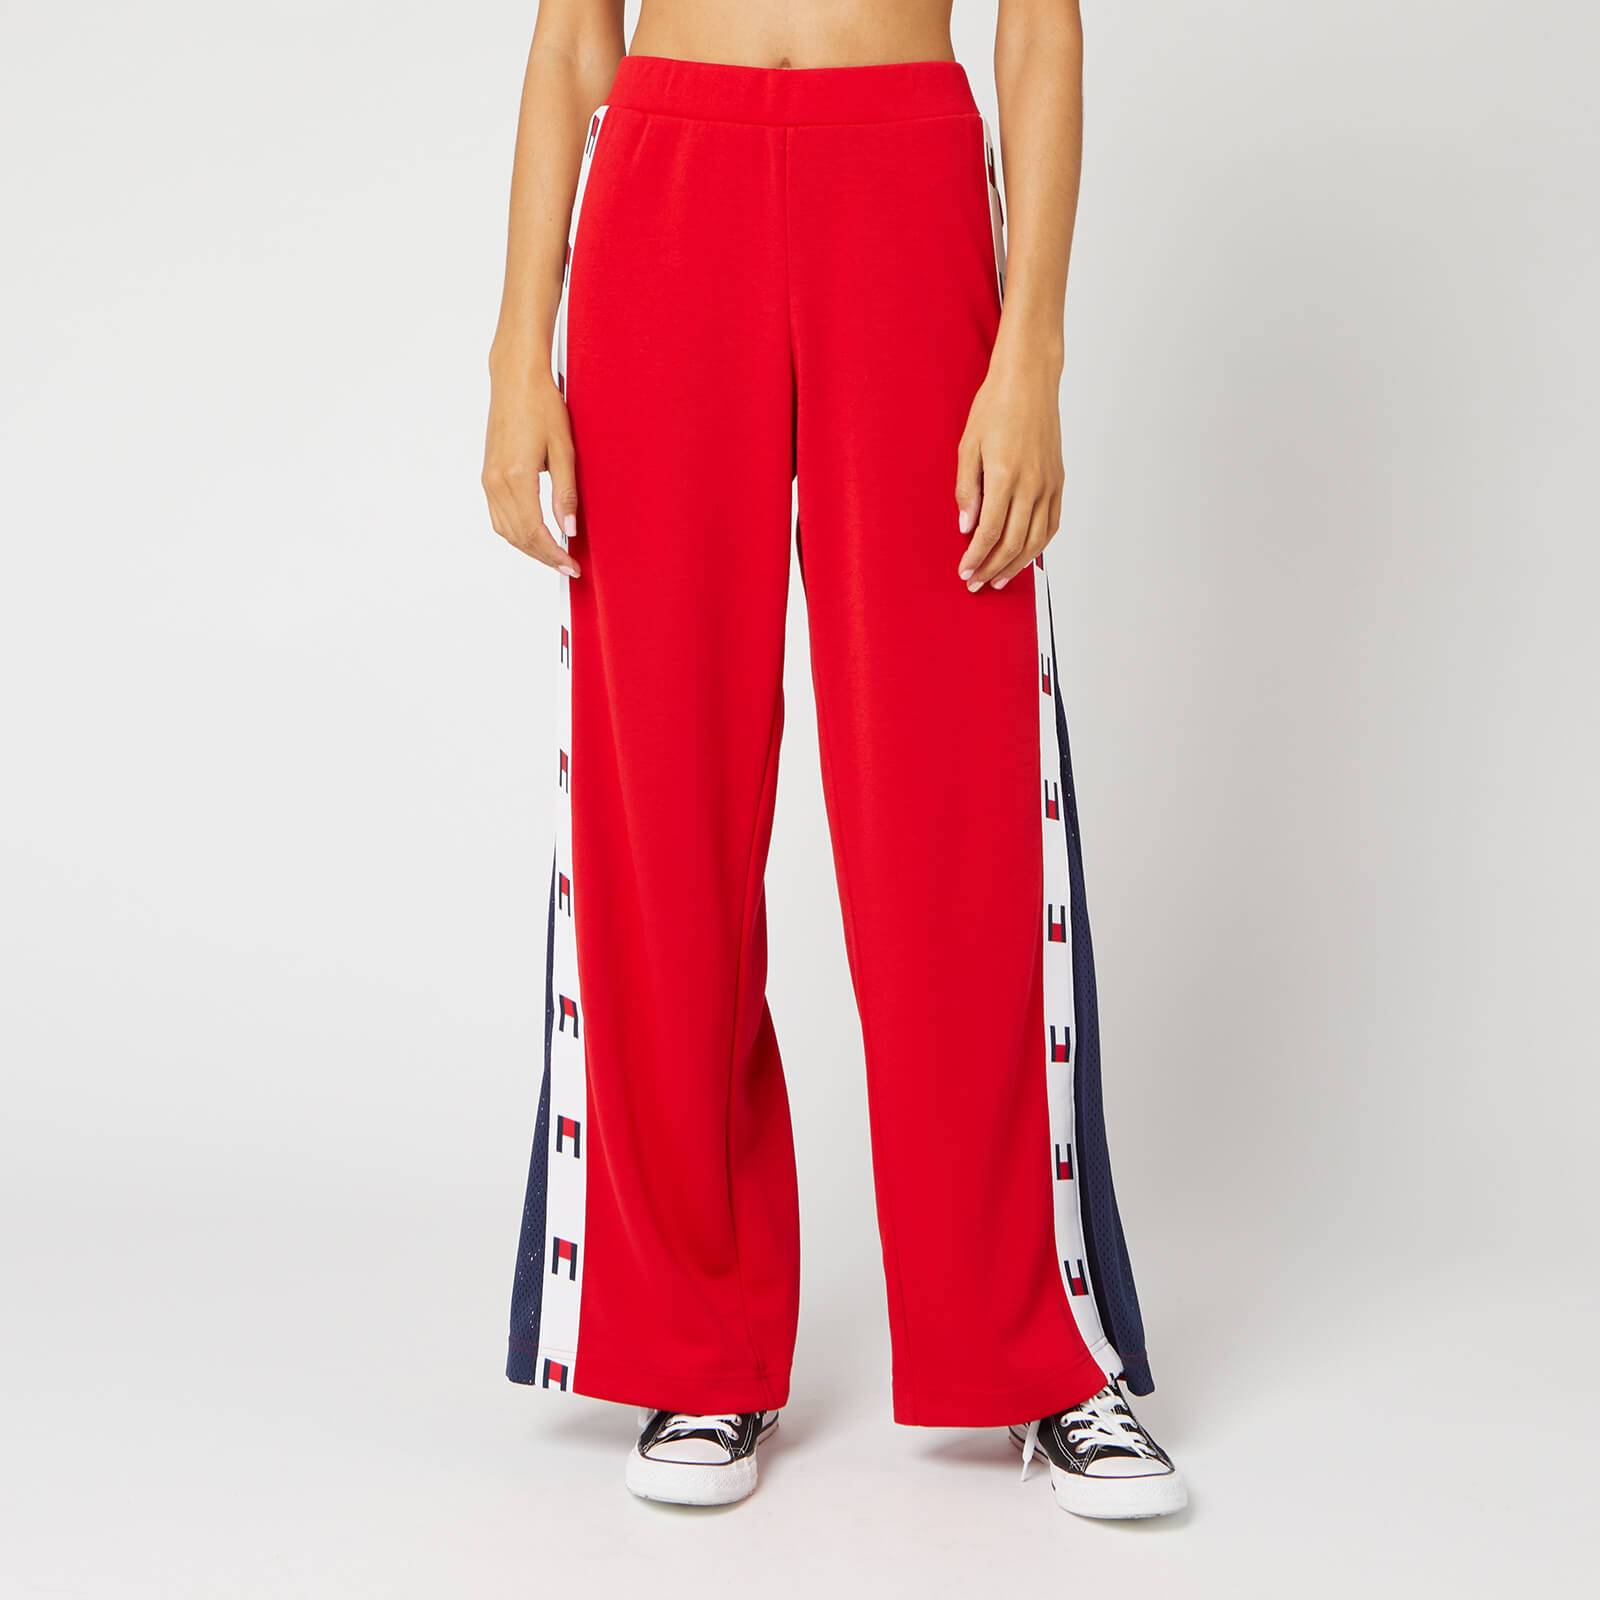 Tommy Hilfiger Sport Women's Flag Tape Flare Pants - True Red - L